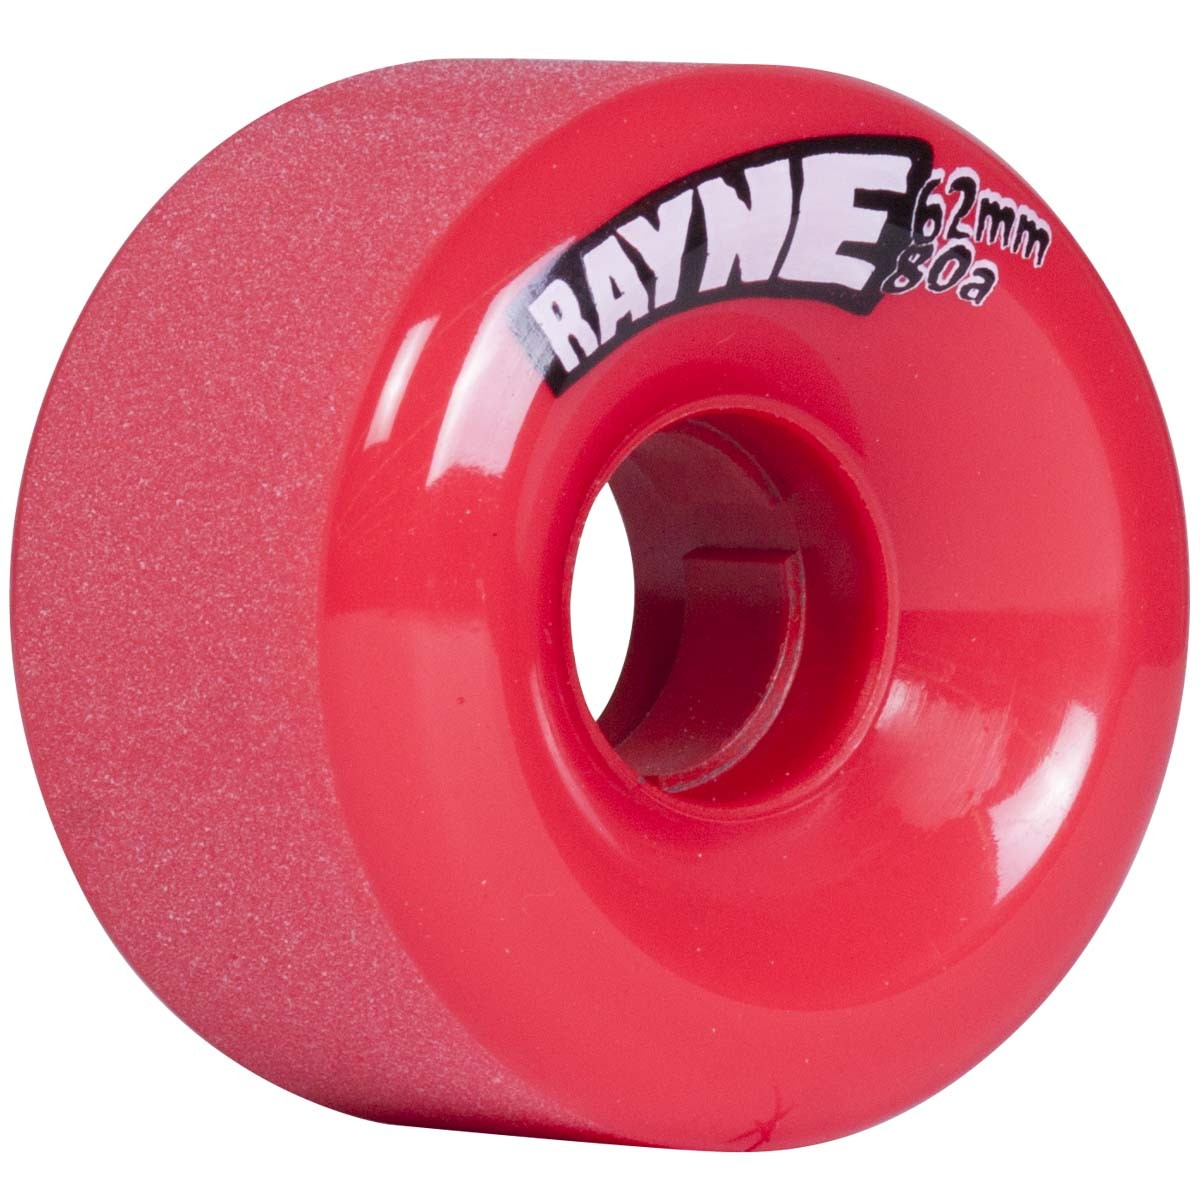 Rayne Envy Longboard Wheels - 62mm